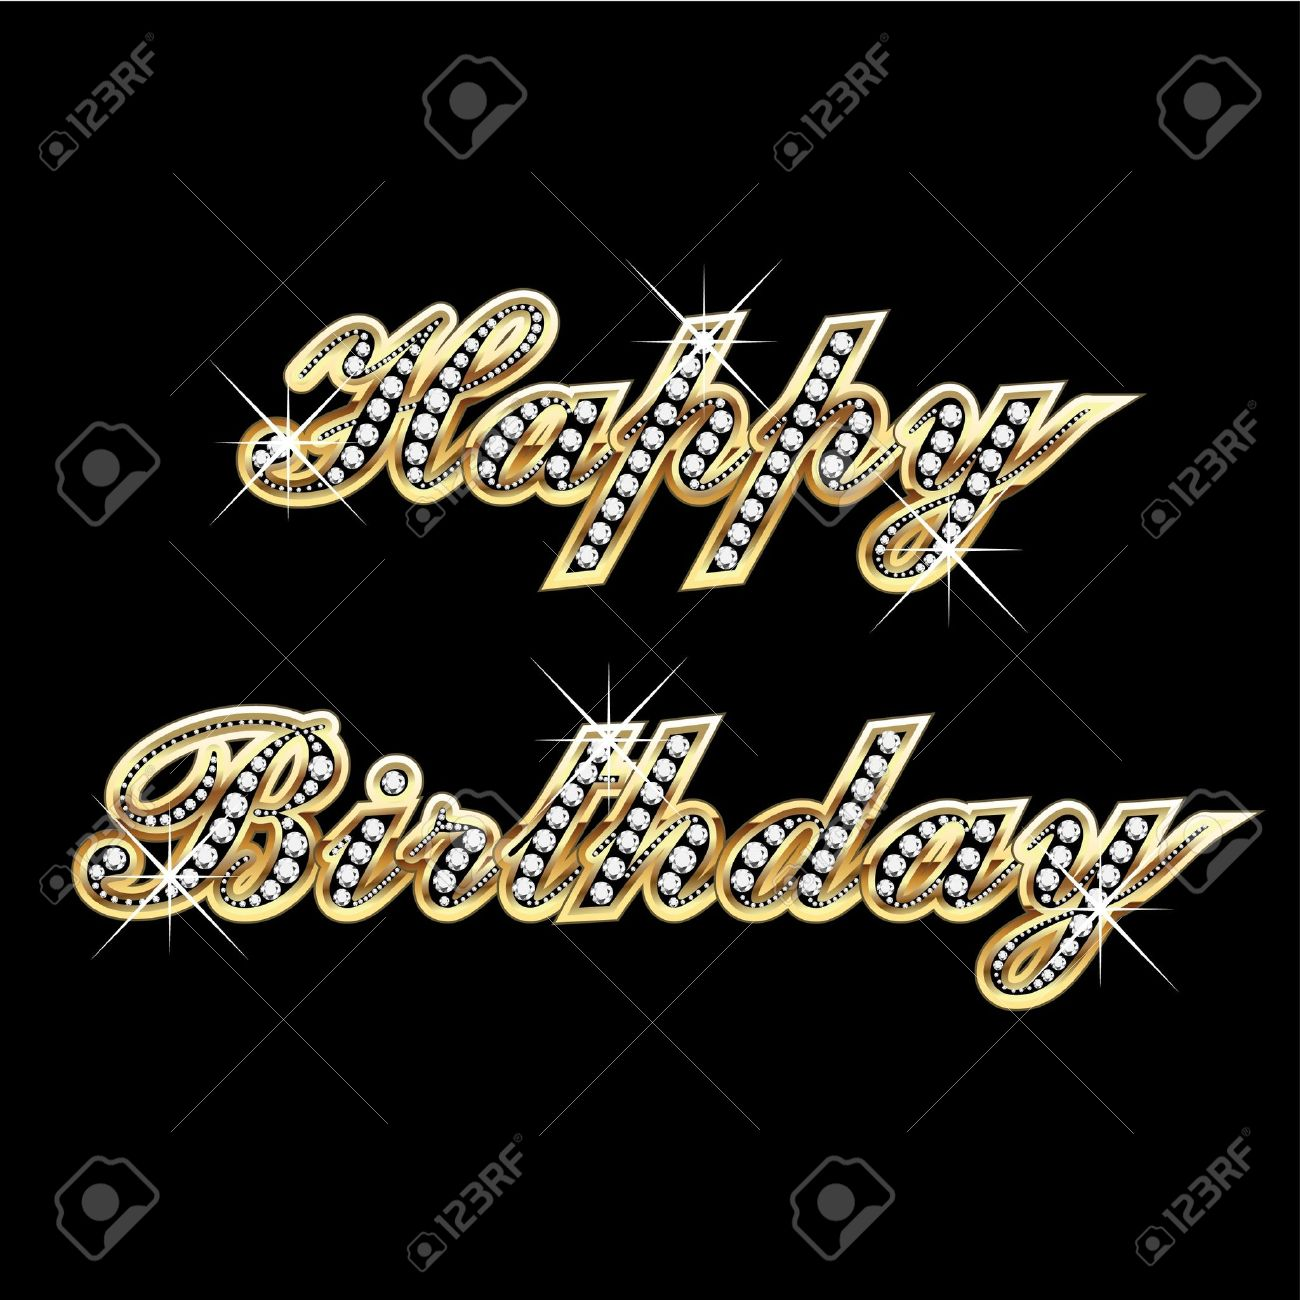 happy birthday bling Happy Birthday In Gold With Diamonds And Bling Bling Royalty Free  happy birthday bling